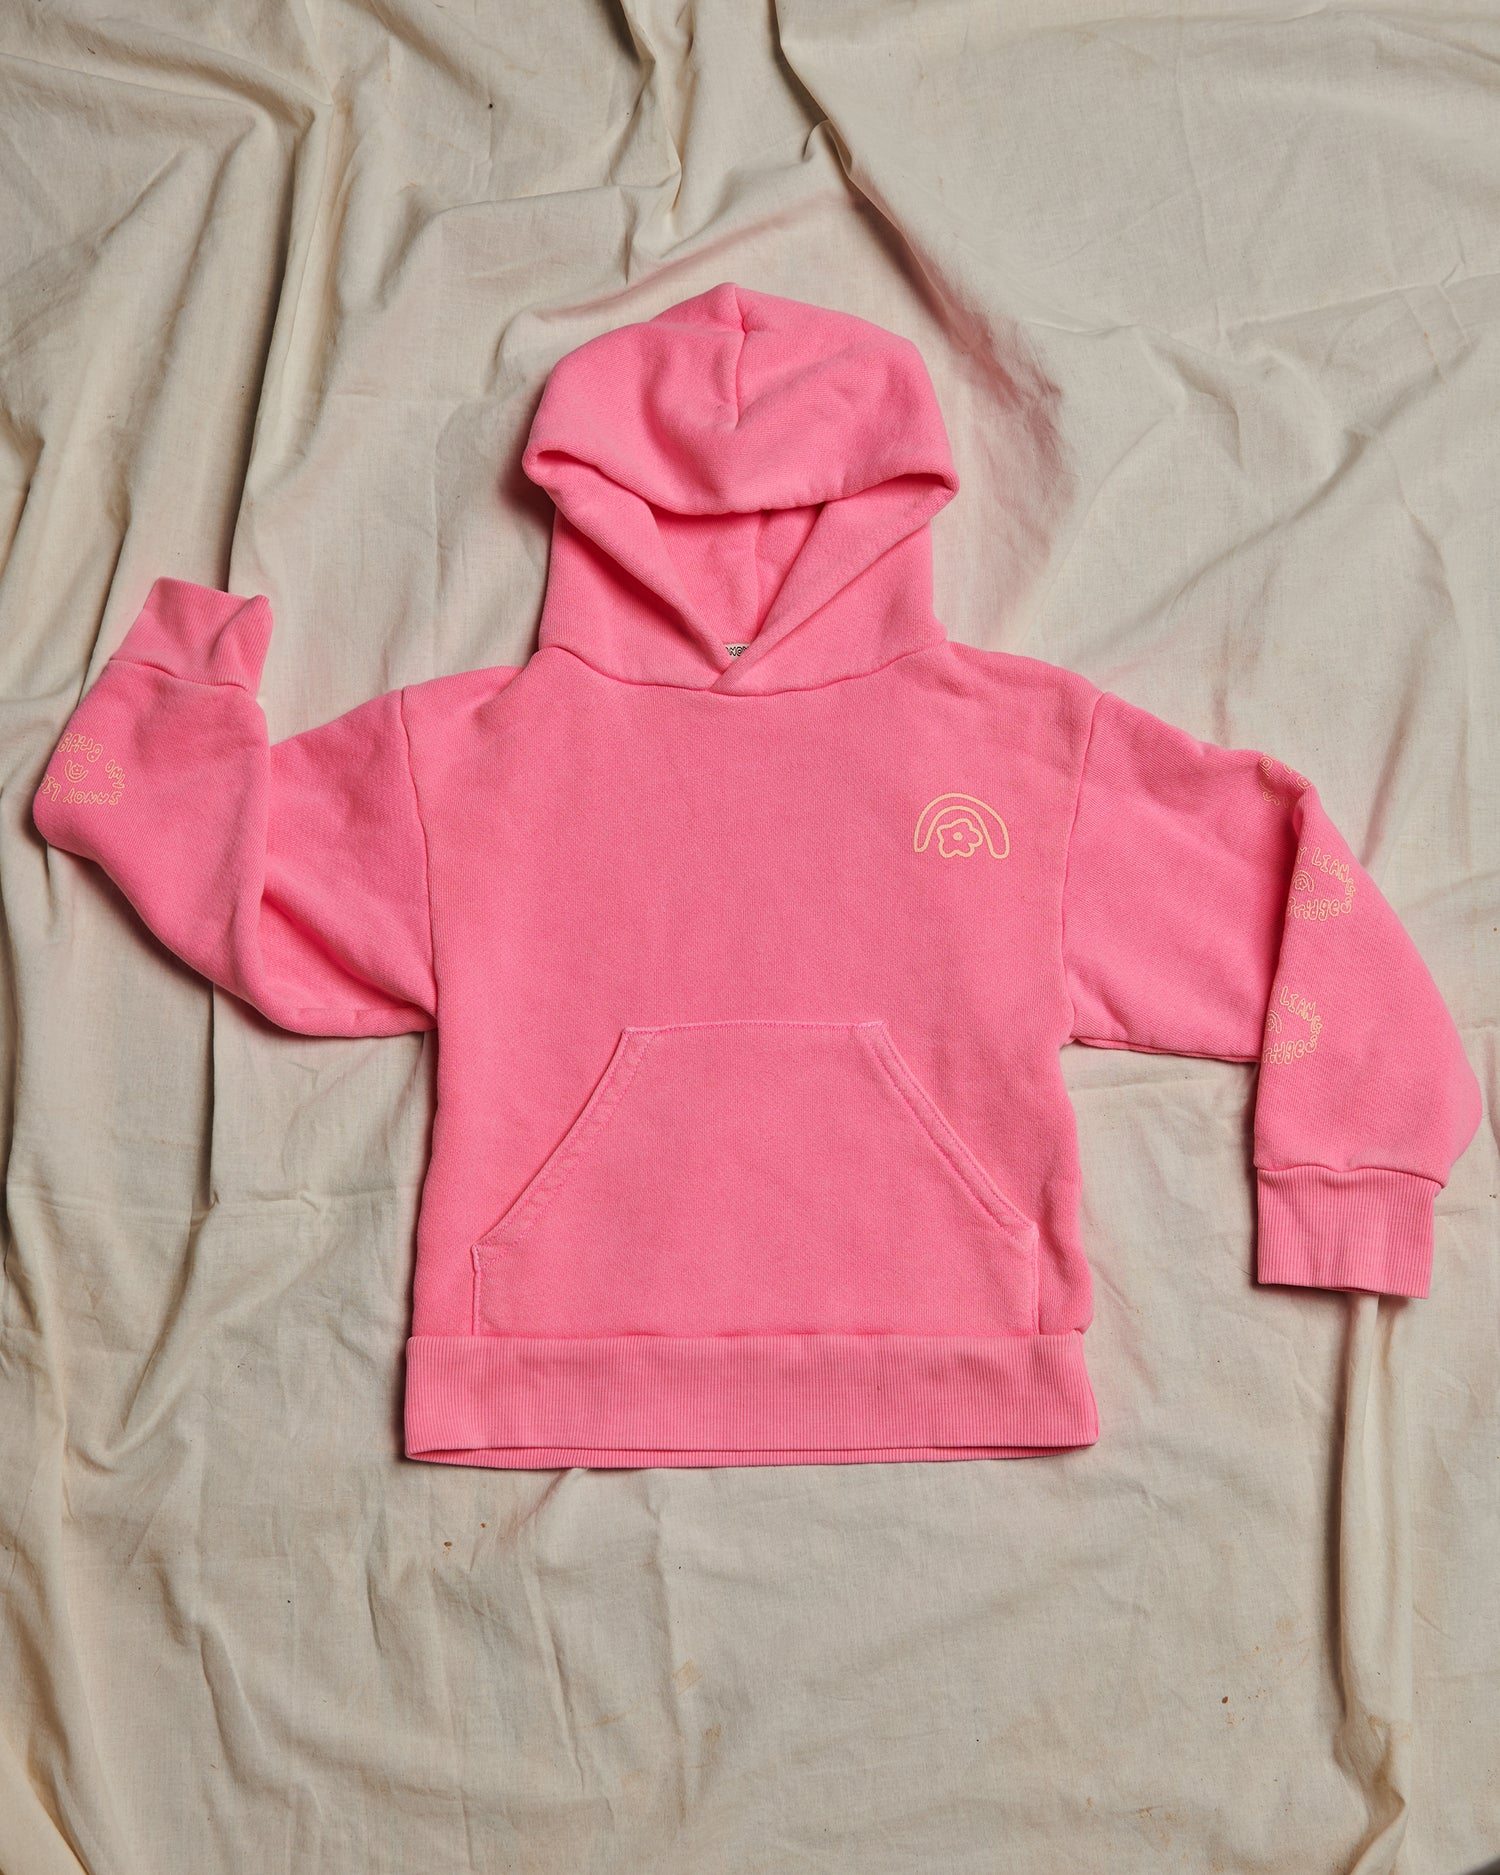 Sandy Liang x Two Bridges Hot Pink Hoodie